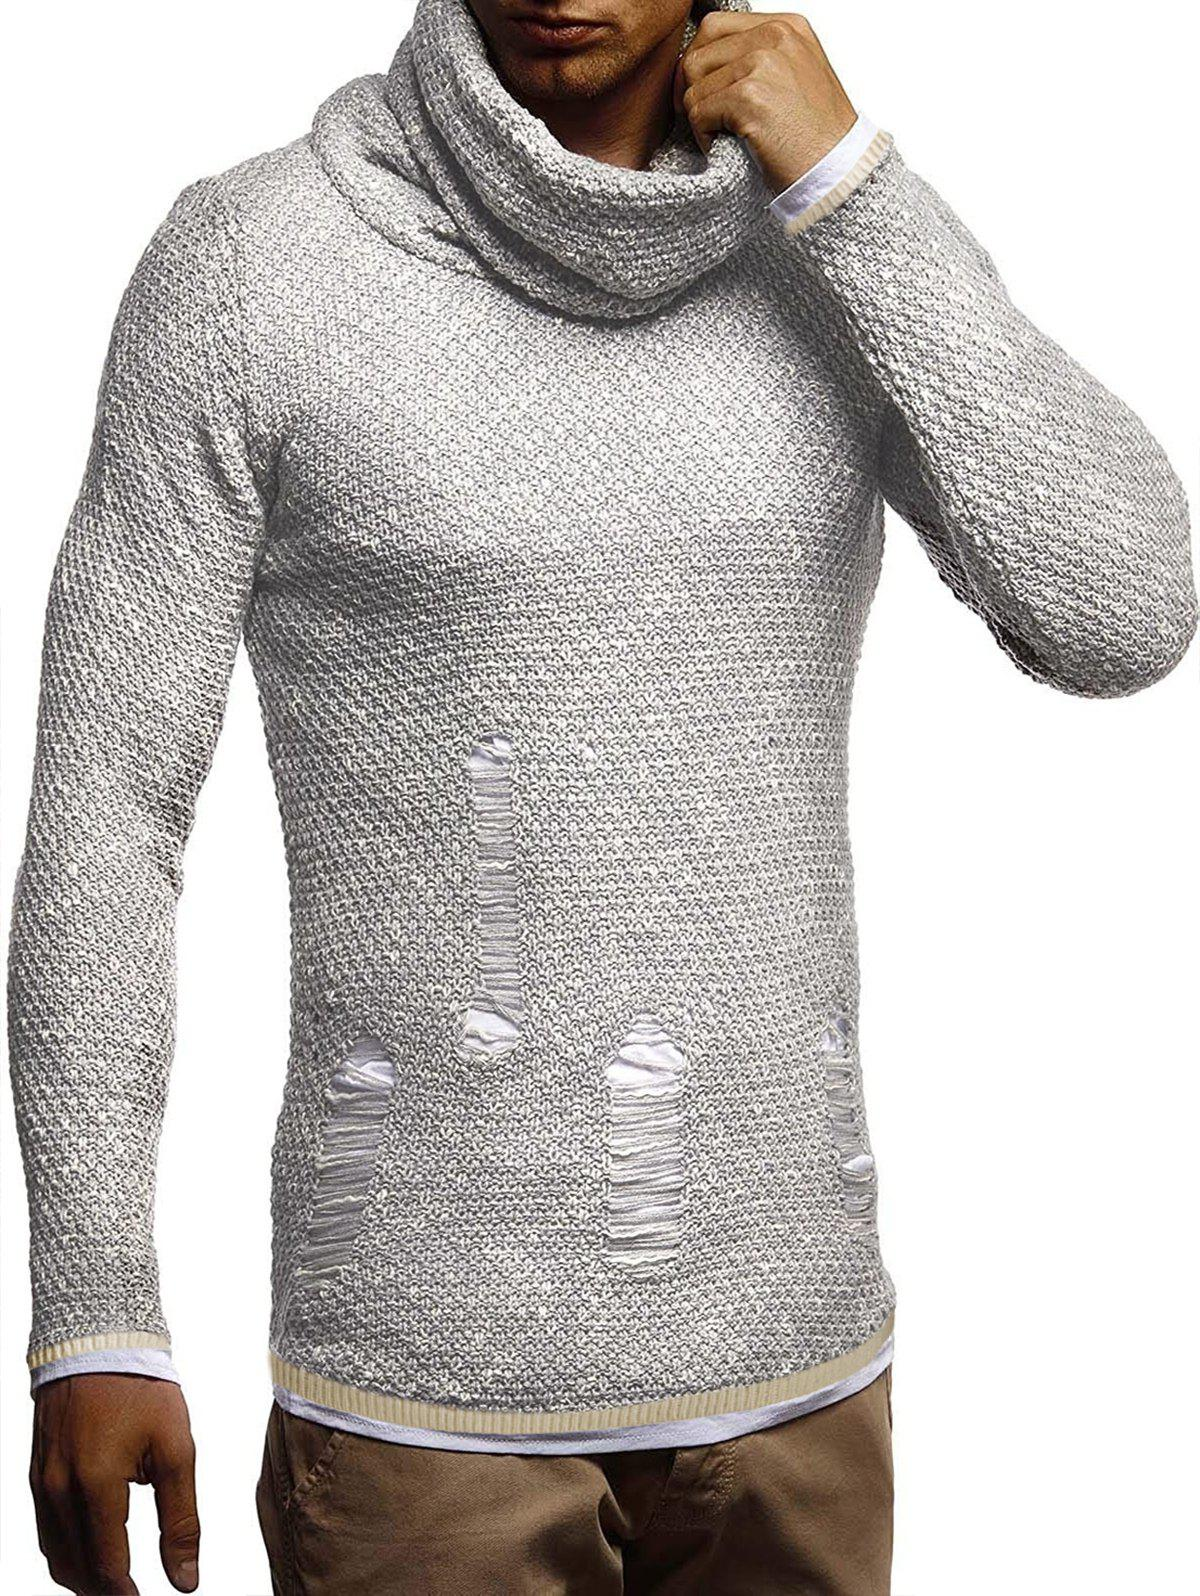 Ripped Decorated Casual Pullover Sweater - LIGHT GRAY S